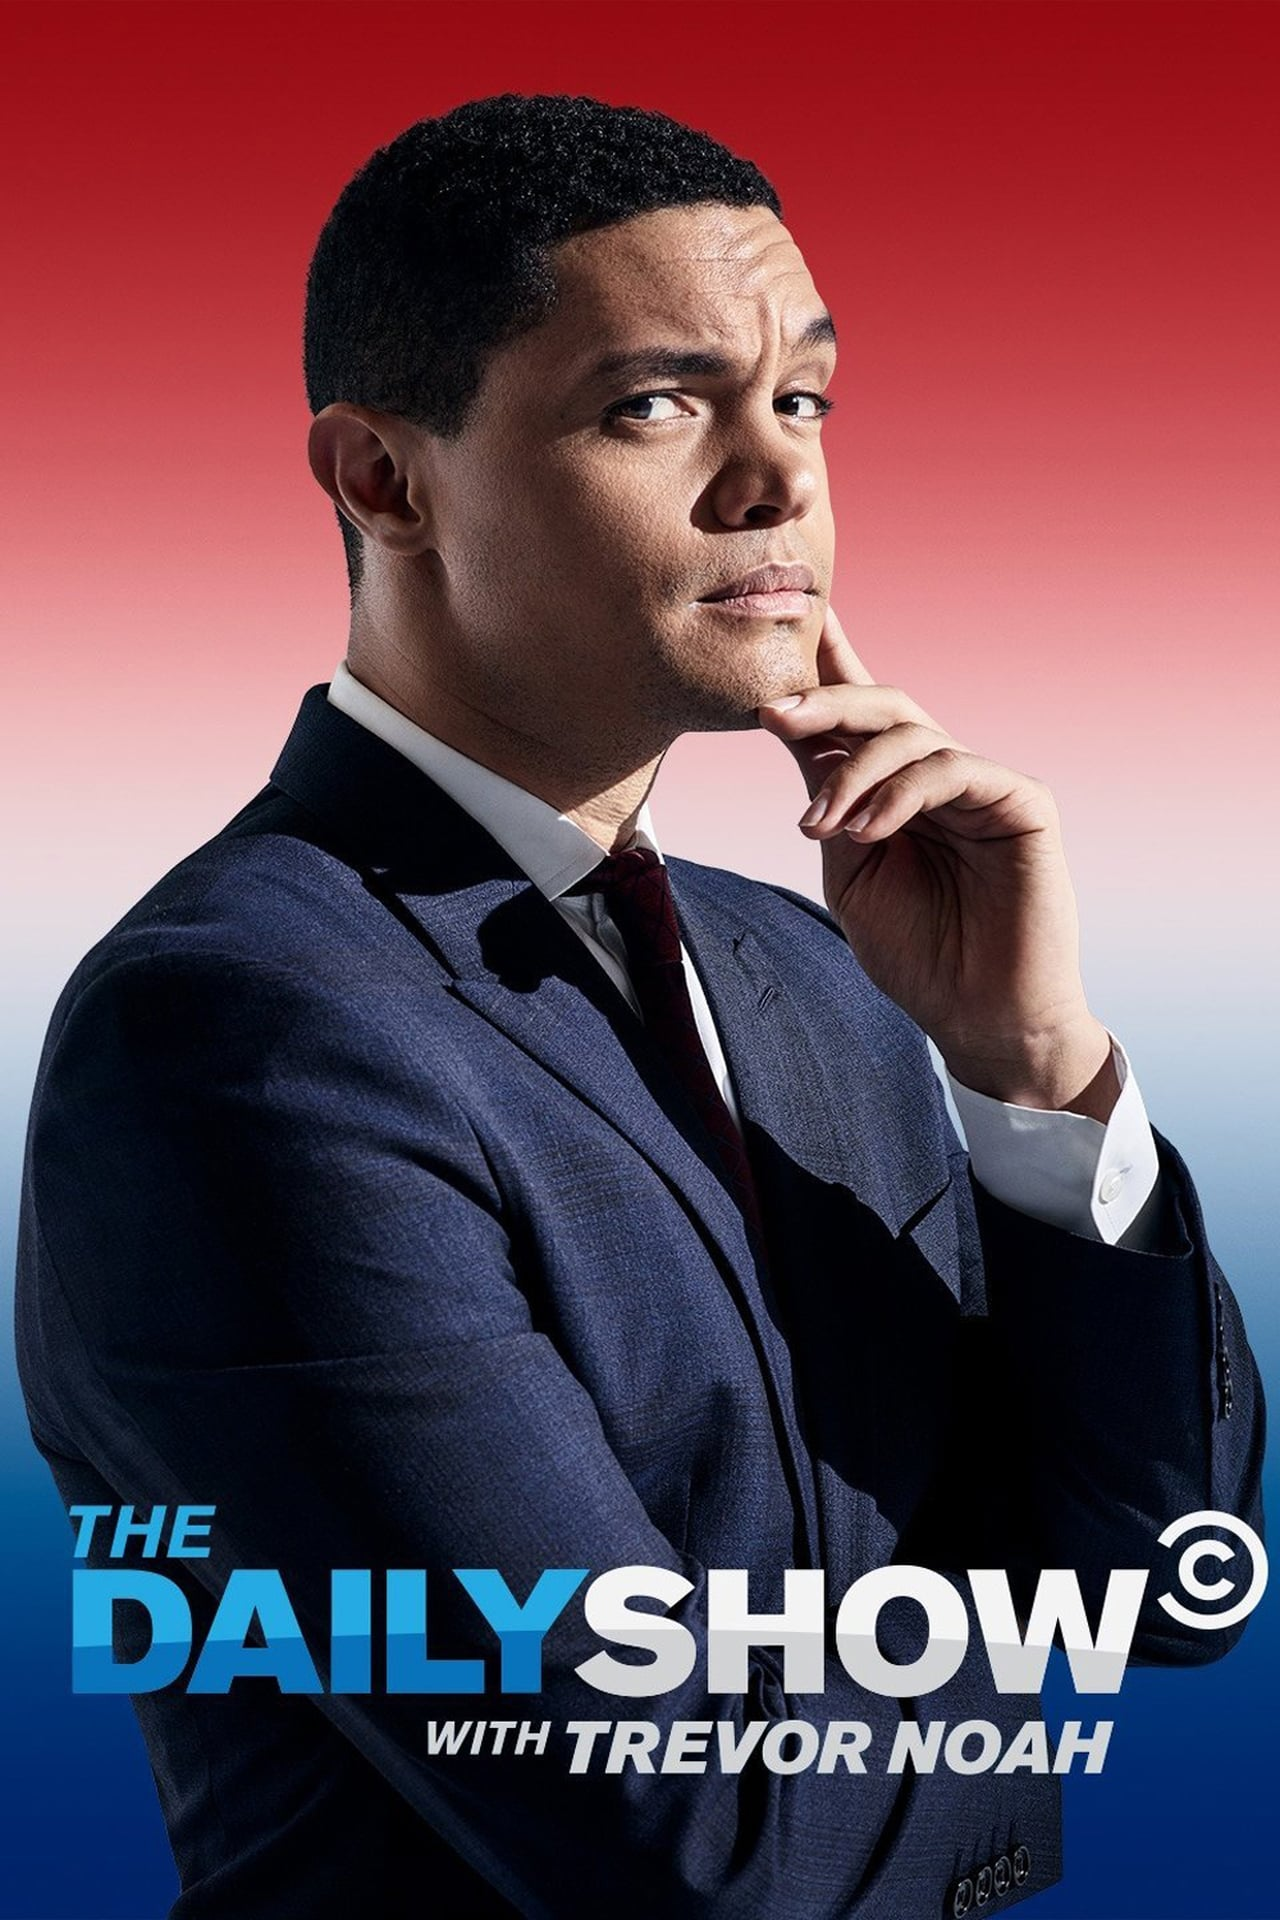 The Daily Show With Trevor Noah (2019)